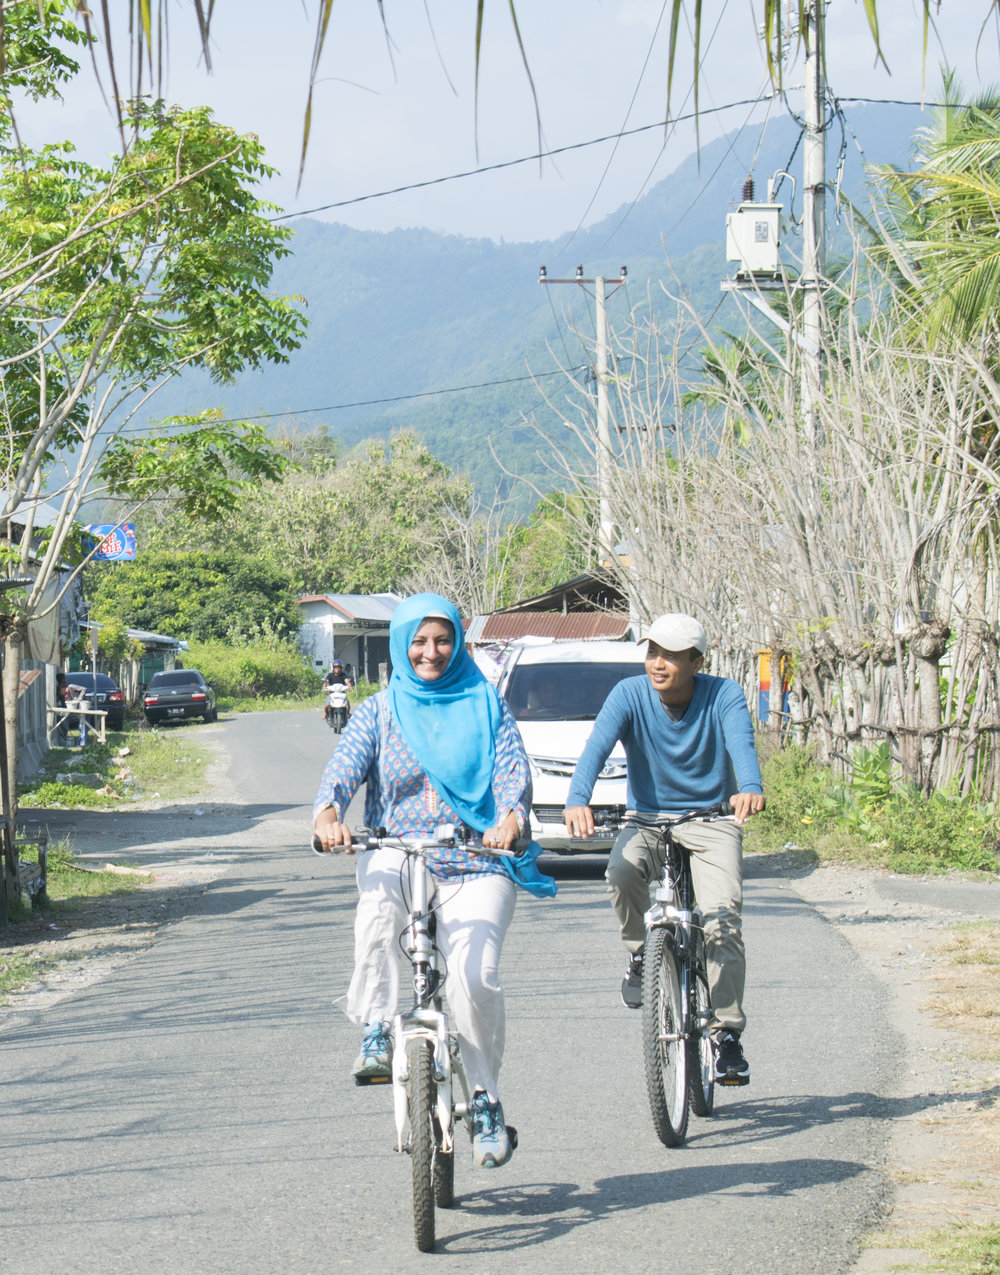 Fulbright and East-West Center alumna, Dr. Feriyal on a bike ride in Aceh as part of the 'Women on Wheels' initiative.